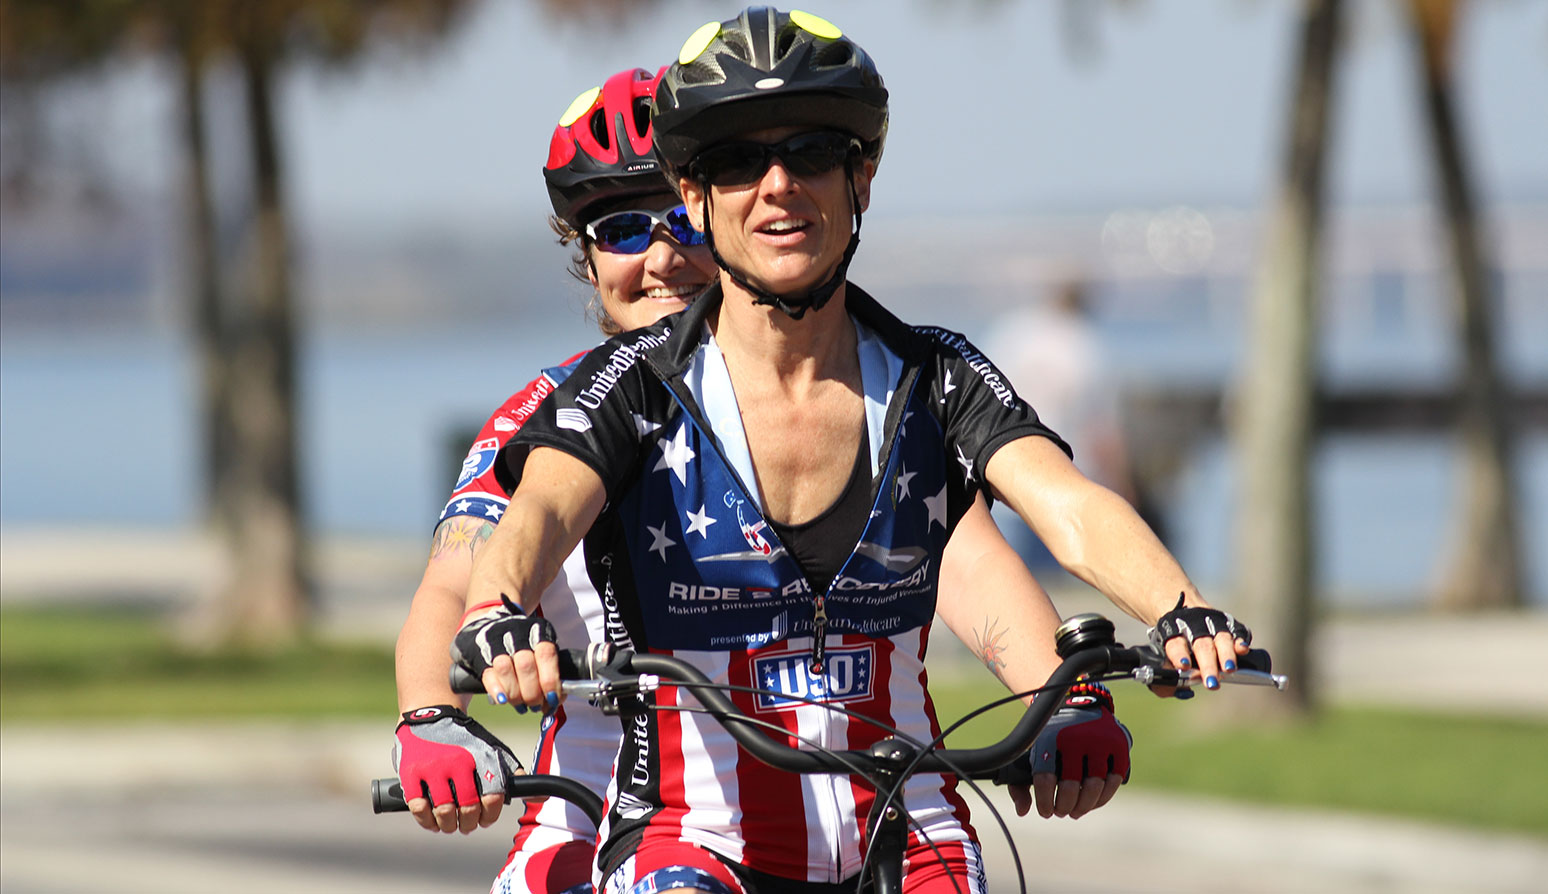 Kelly McDonald, front, rode tandem with Kathy Champion, back, at the Seminole Cyclefest in 2012.